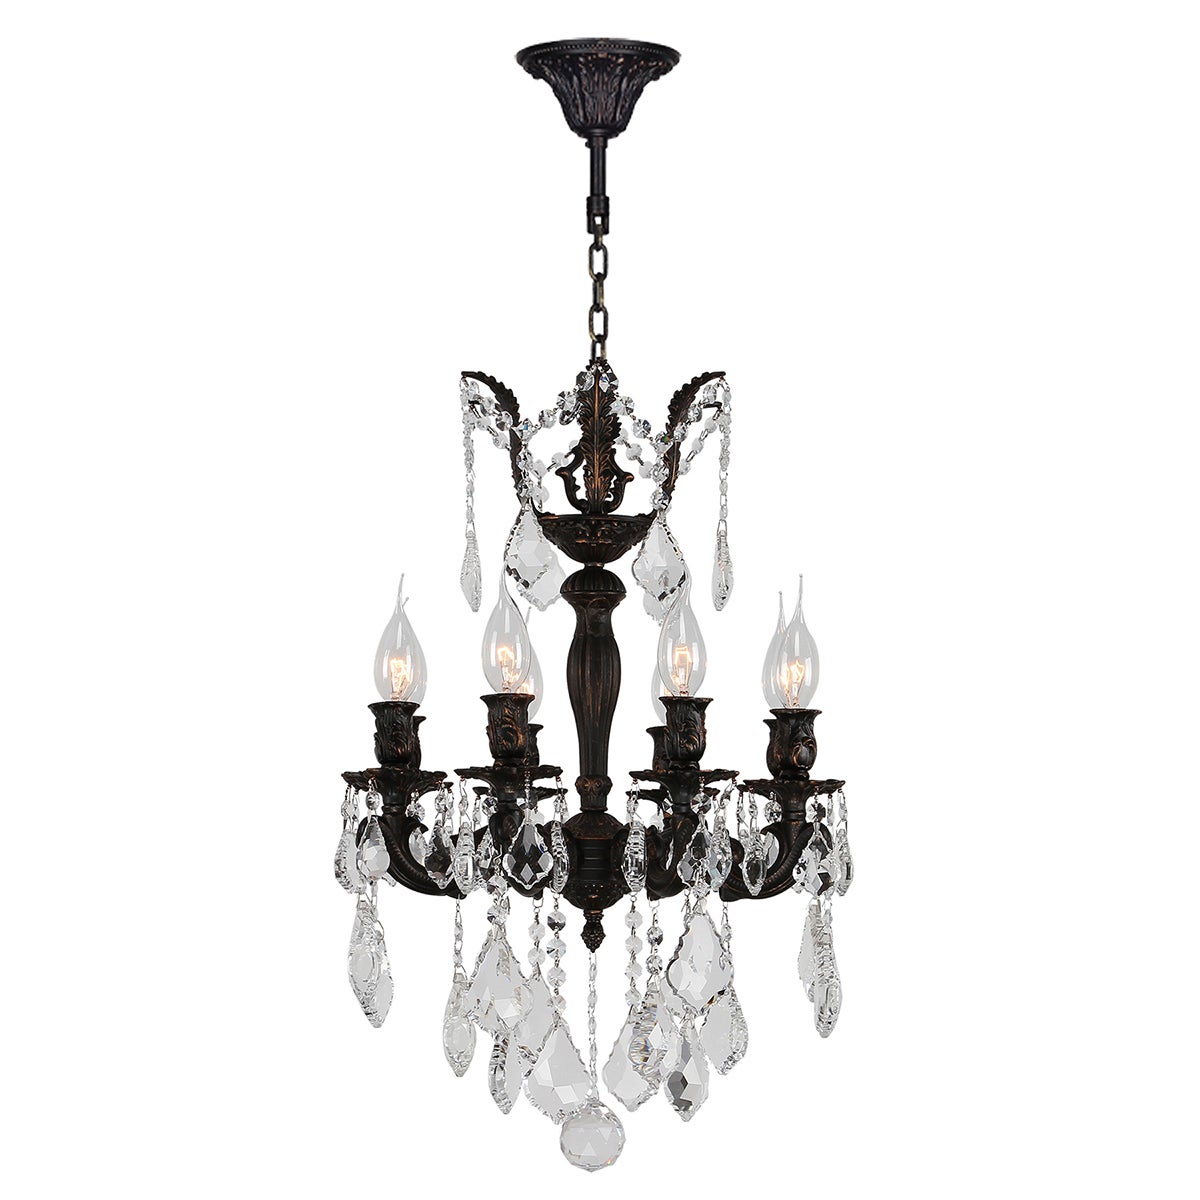 Shop French Imperial Collection 8 Light Flemish